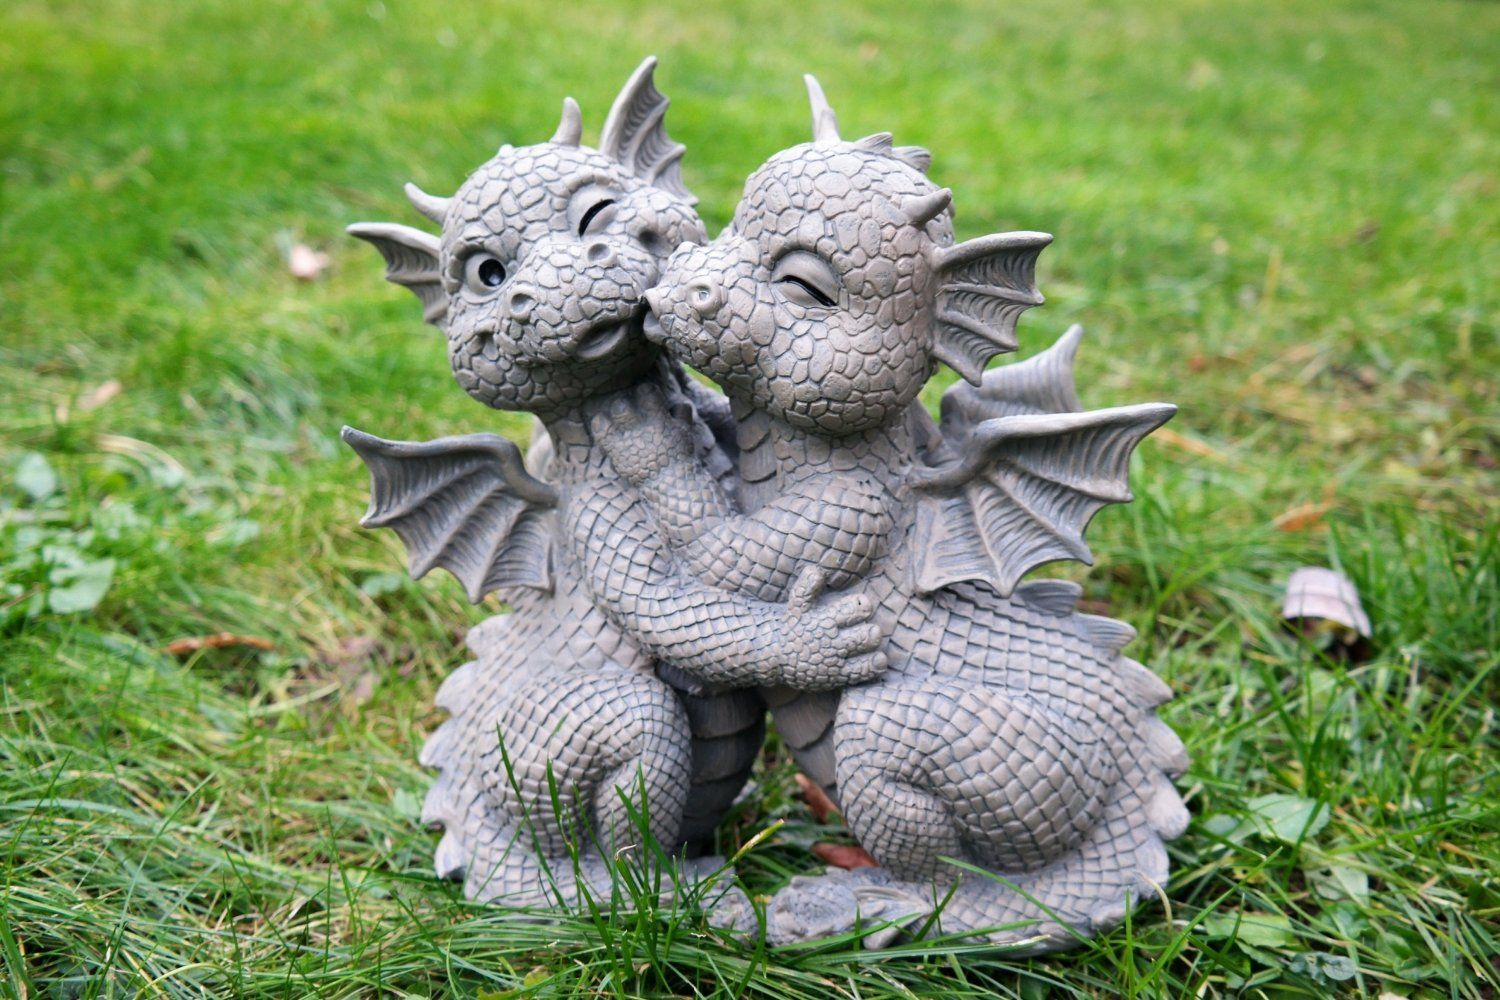 ars bavaria couple s 39 embrassant dragon figurine pour On figurine decoration jardin